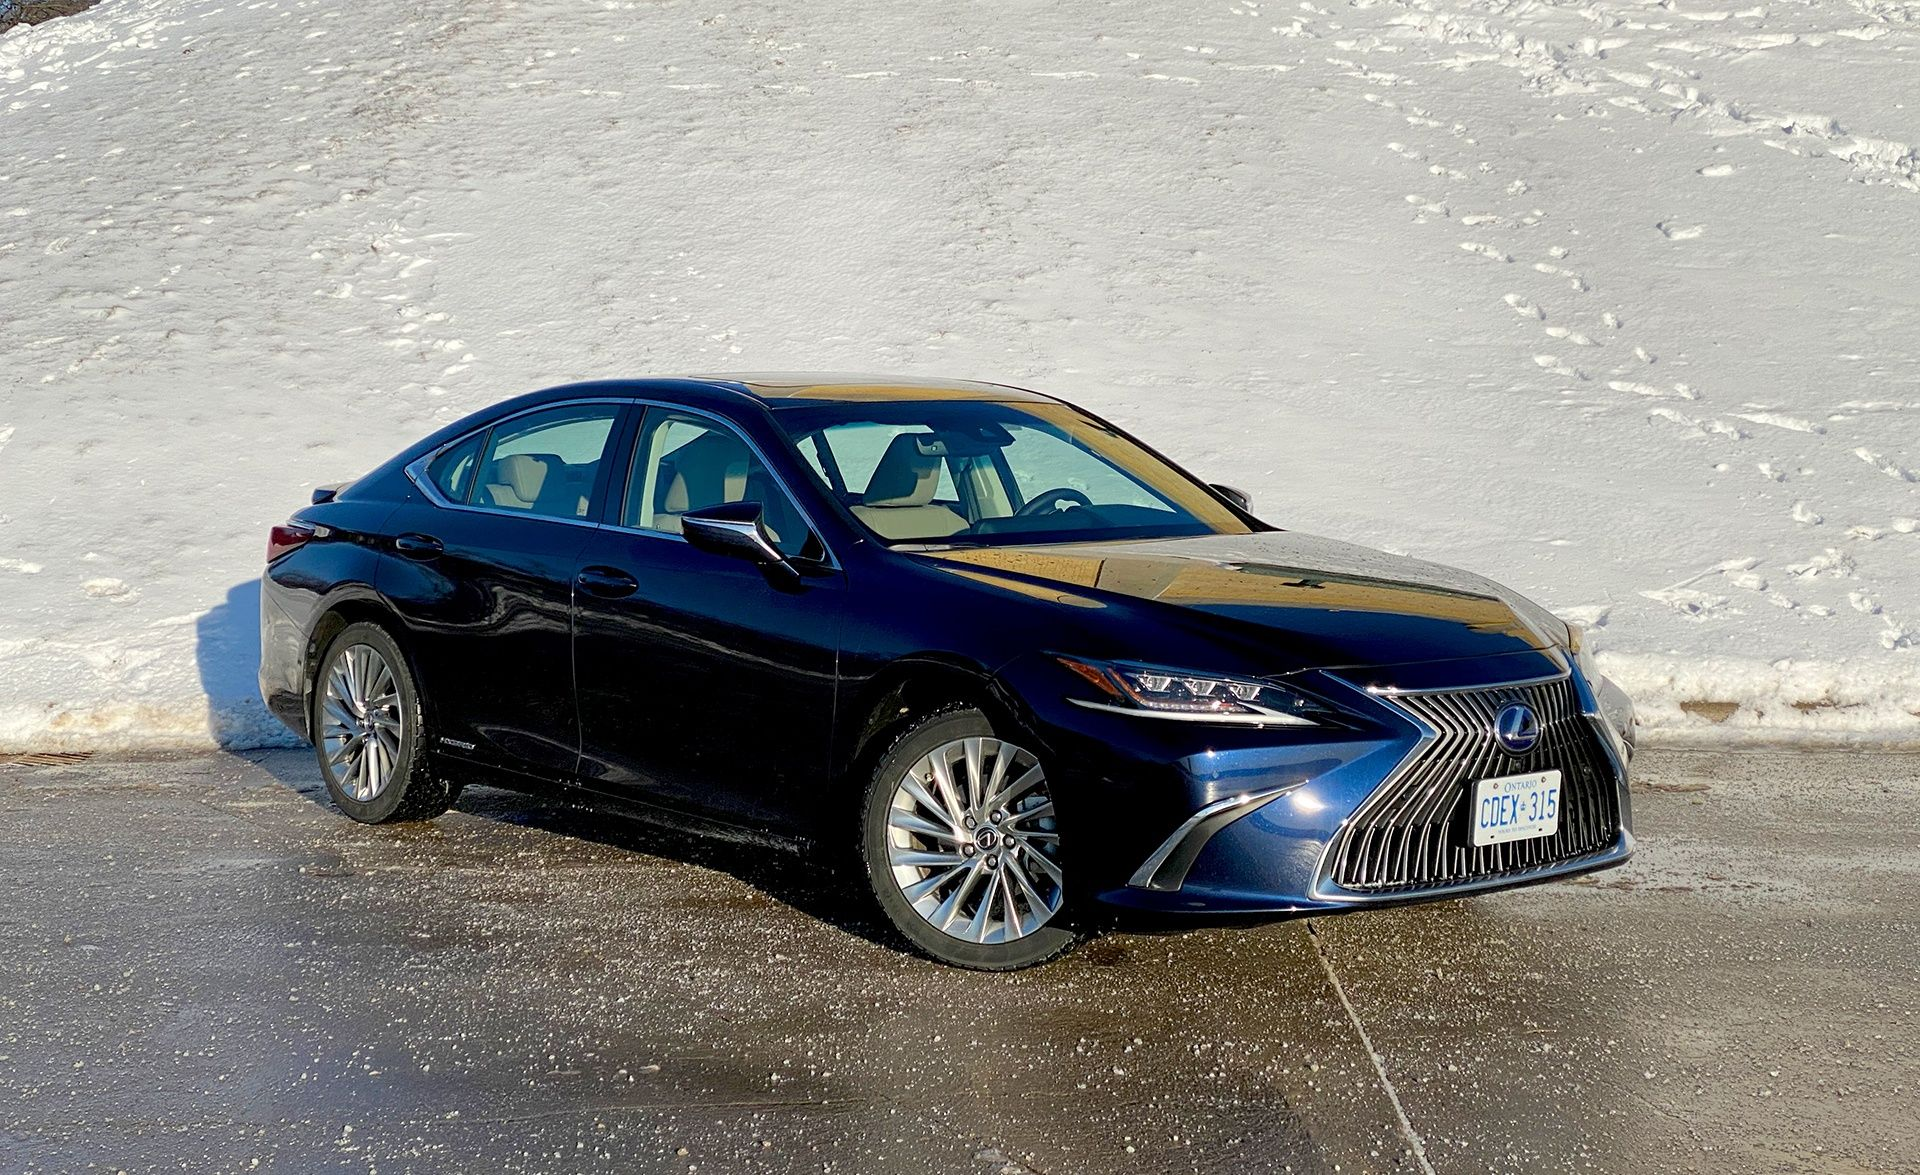 Lexus Es 300h Sedan In 2020 Lexus Es Lexus Vehicle Warranty